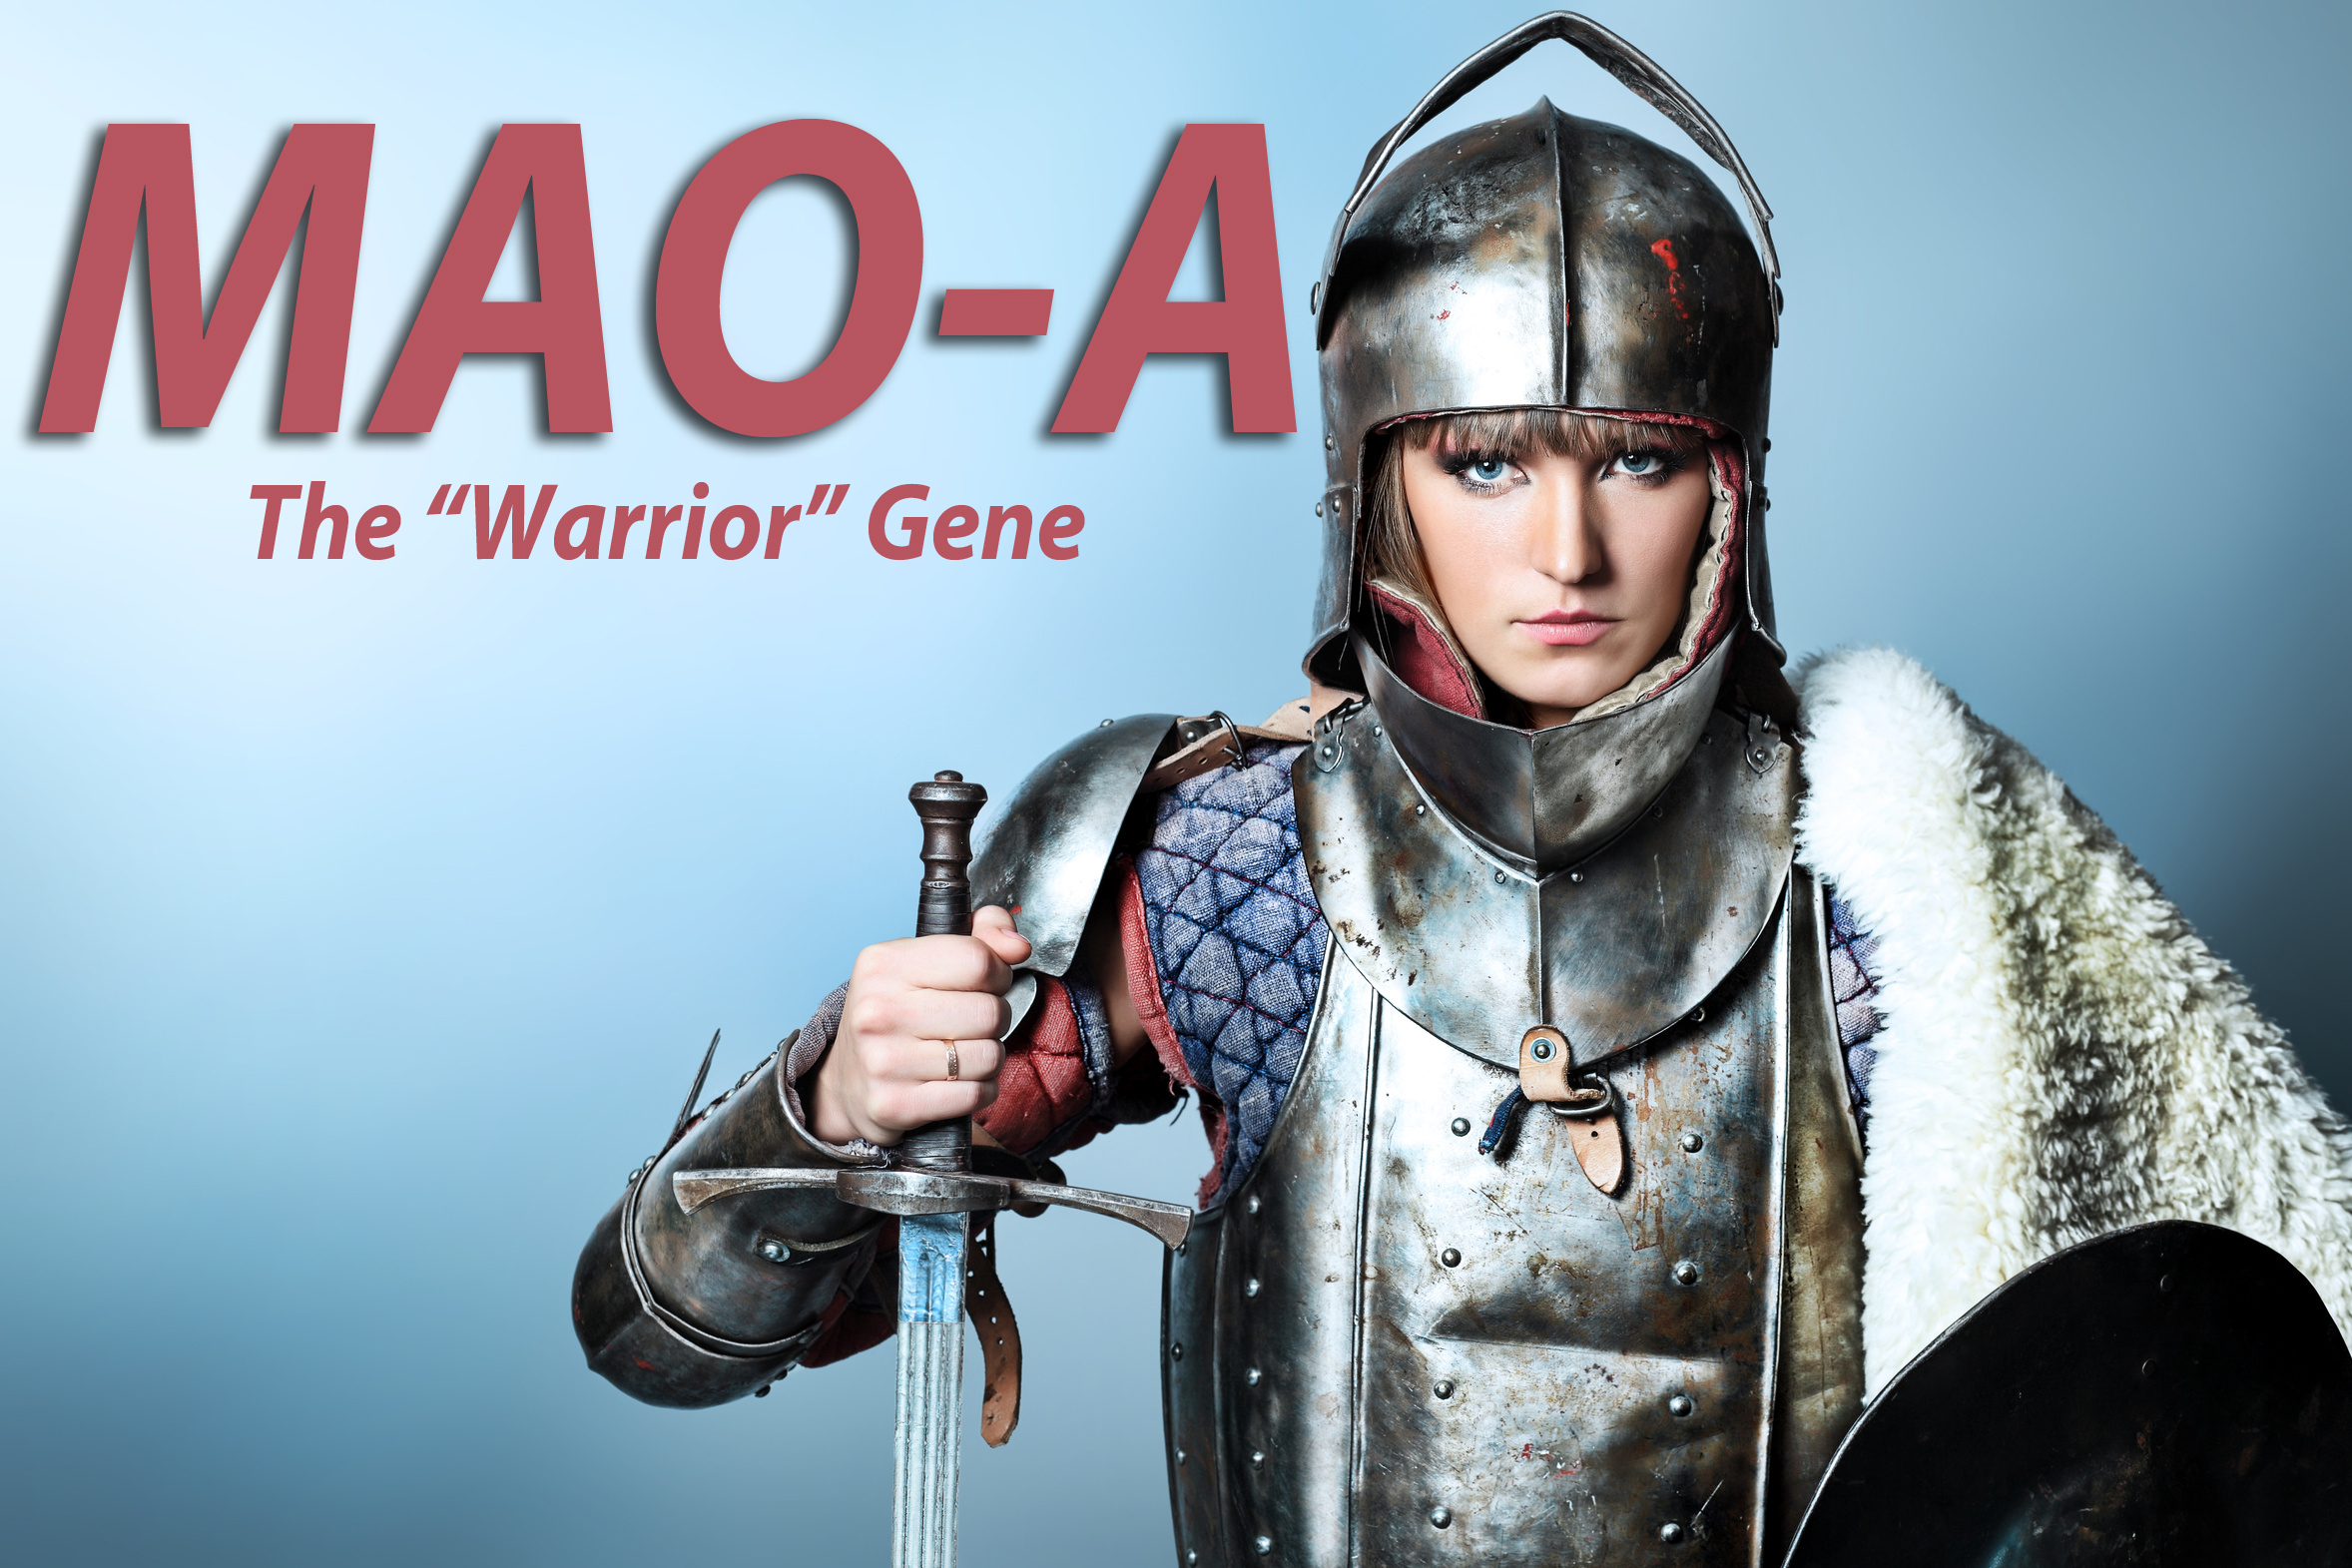 the monoamine oxidase a gene essay The so-called warrior gene comprises particular variations in the x chromosome gene that produces monoamine oxidase a (maoa) it's not an adequate response to pick nits with particular papers and so by implication condemn all of genetic literacy project unlocking crime using.